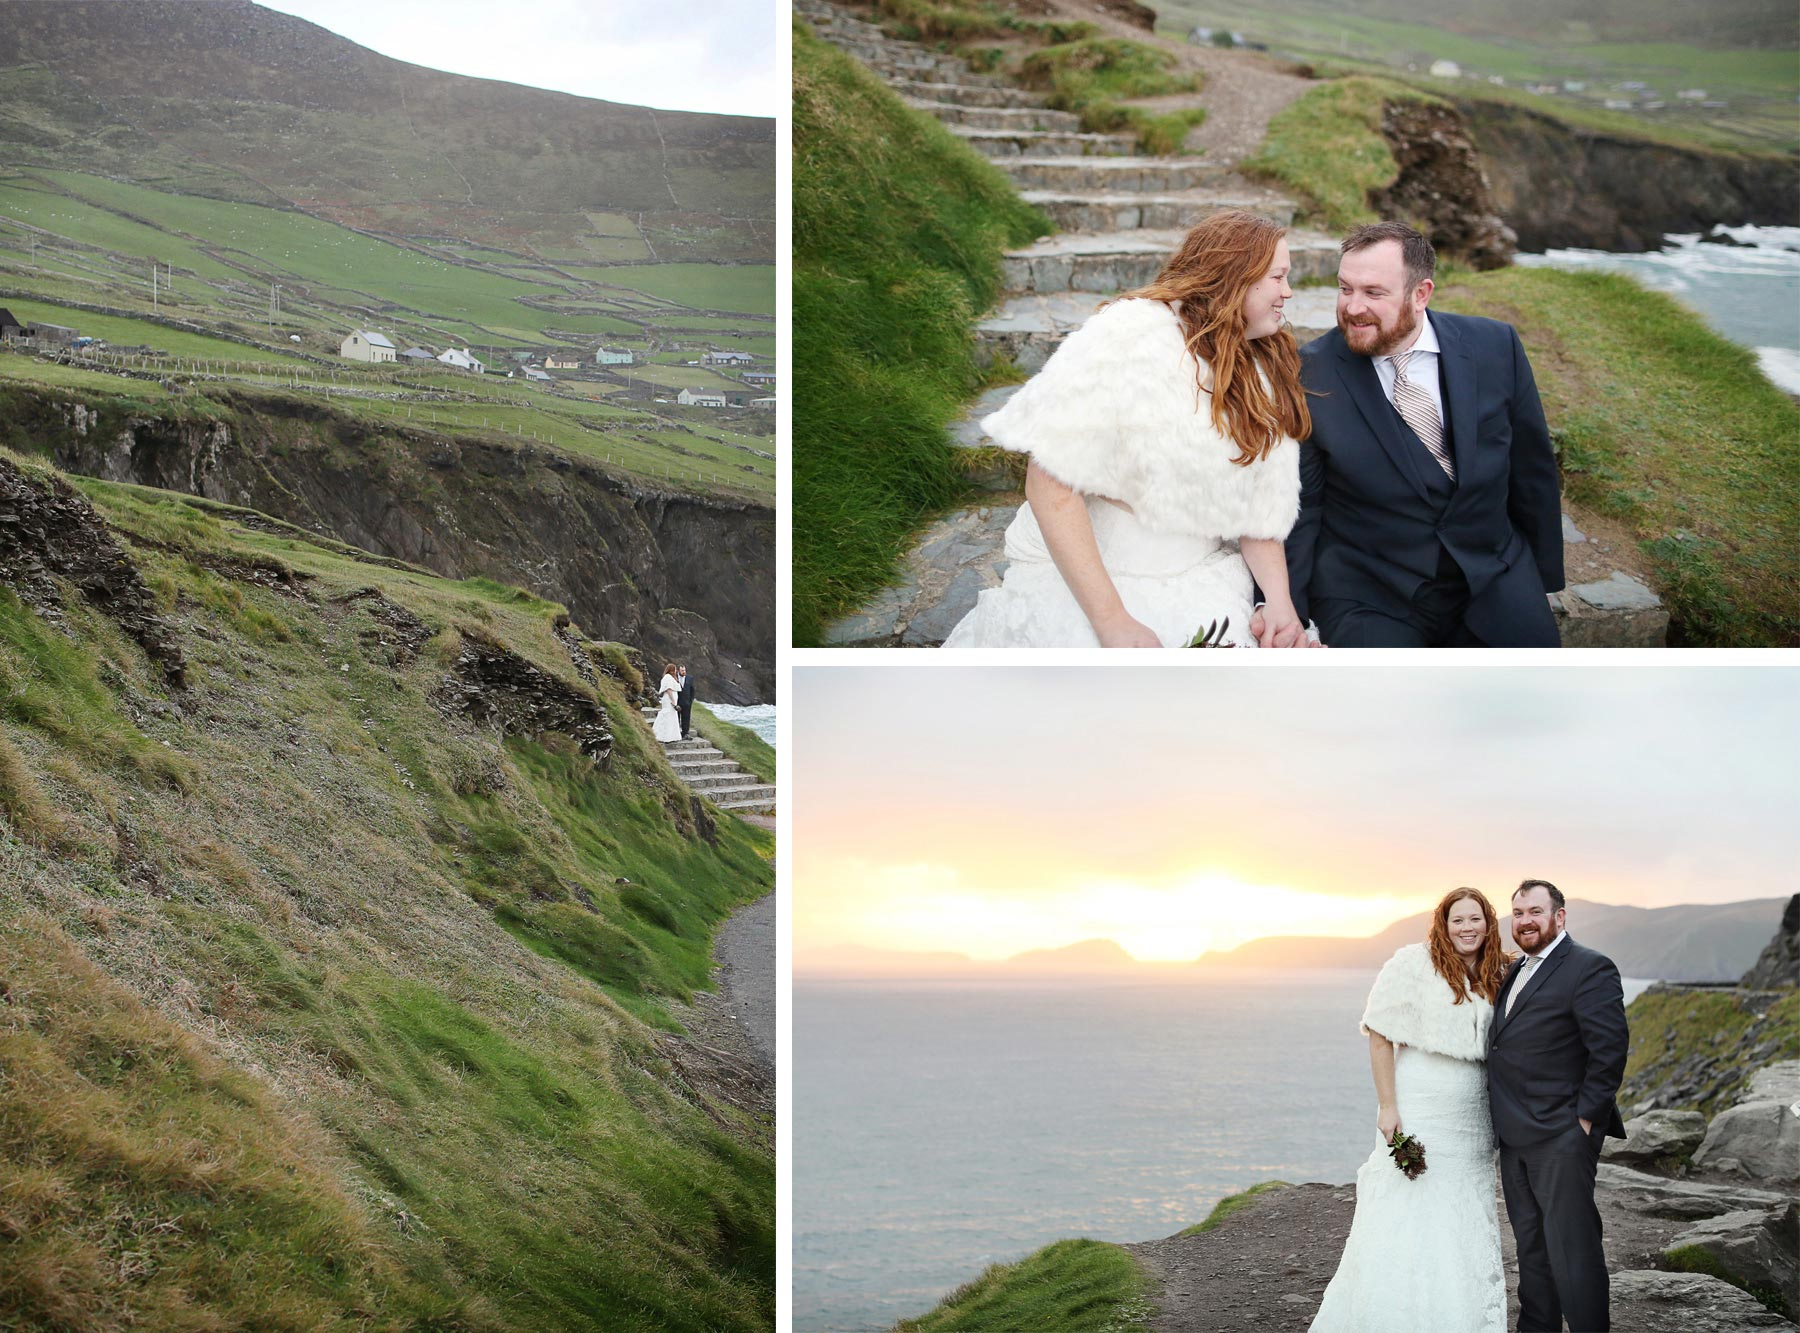 13-Kilarney-Ireland-Wedding-Photographer-by-Andrew-Vick-Photography-Fall-Autumn-Destination-Bride-Groom-Village-Landscape-Countryside-Ocean-Embrace-Sunset-Becca-and-Donal.jpg